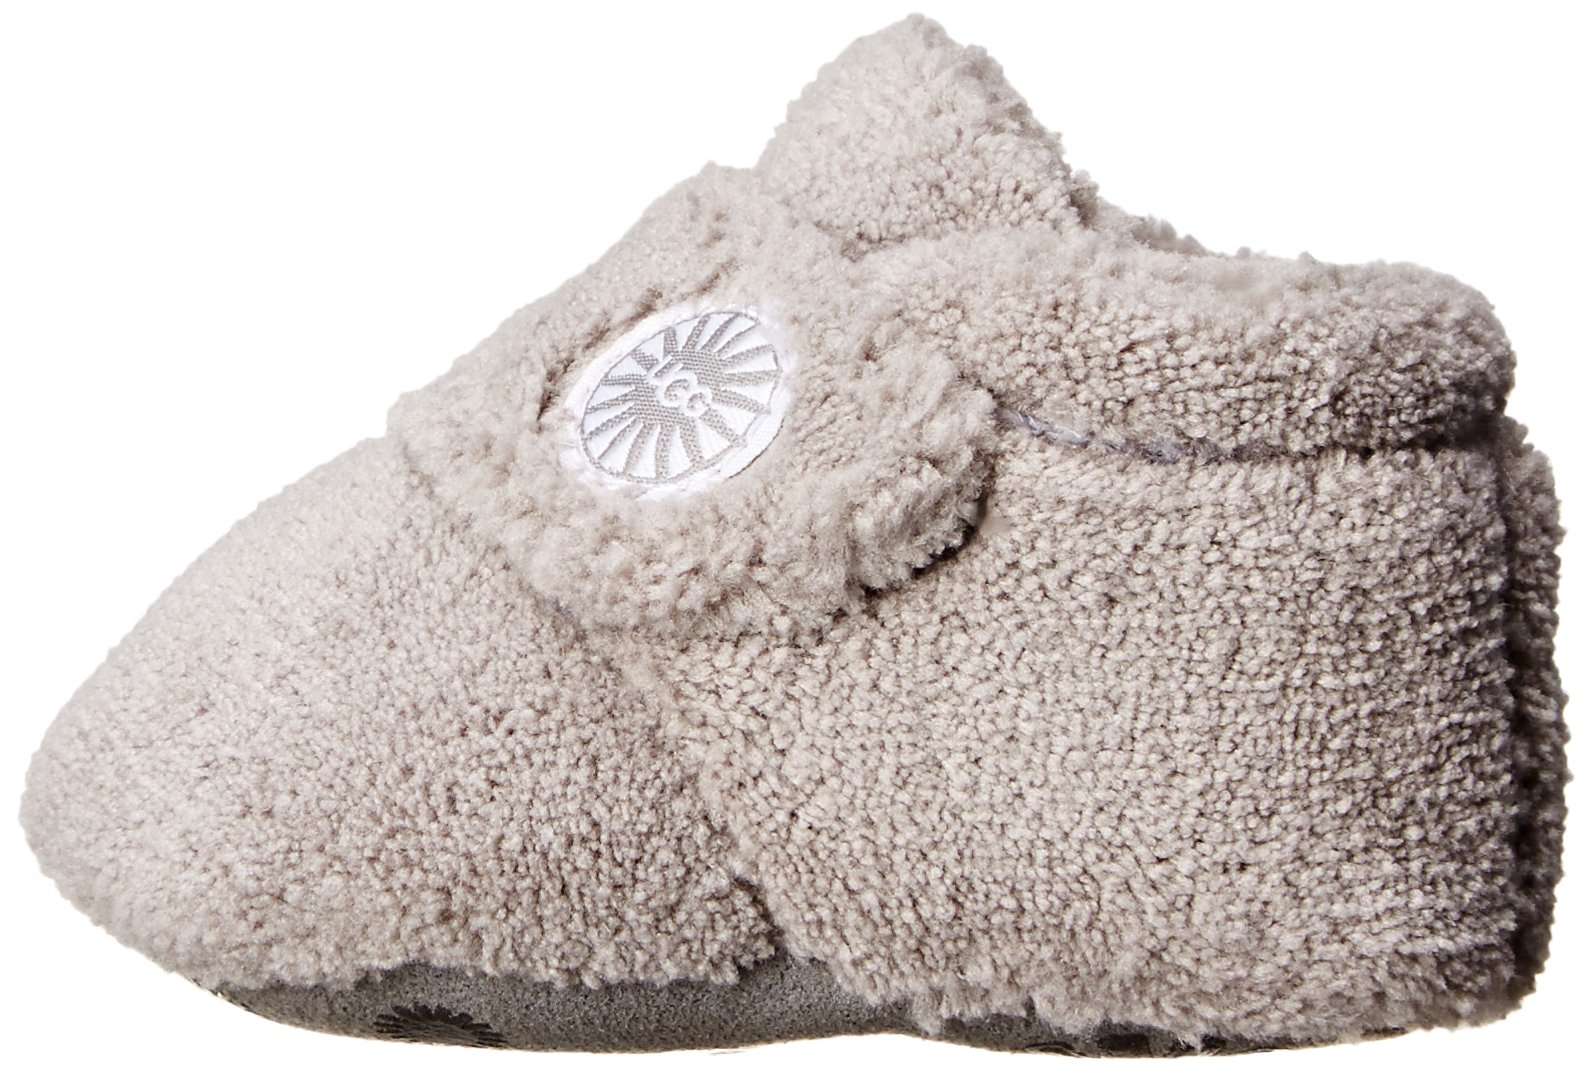 UGG Unisex Bixbee Bootie (Infant/Toddler), Charcoal, 2/3 (6-12 Months) M by UGG (Image #5)